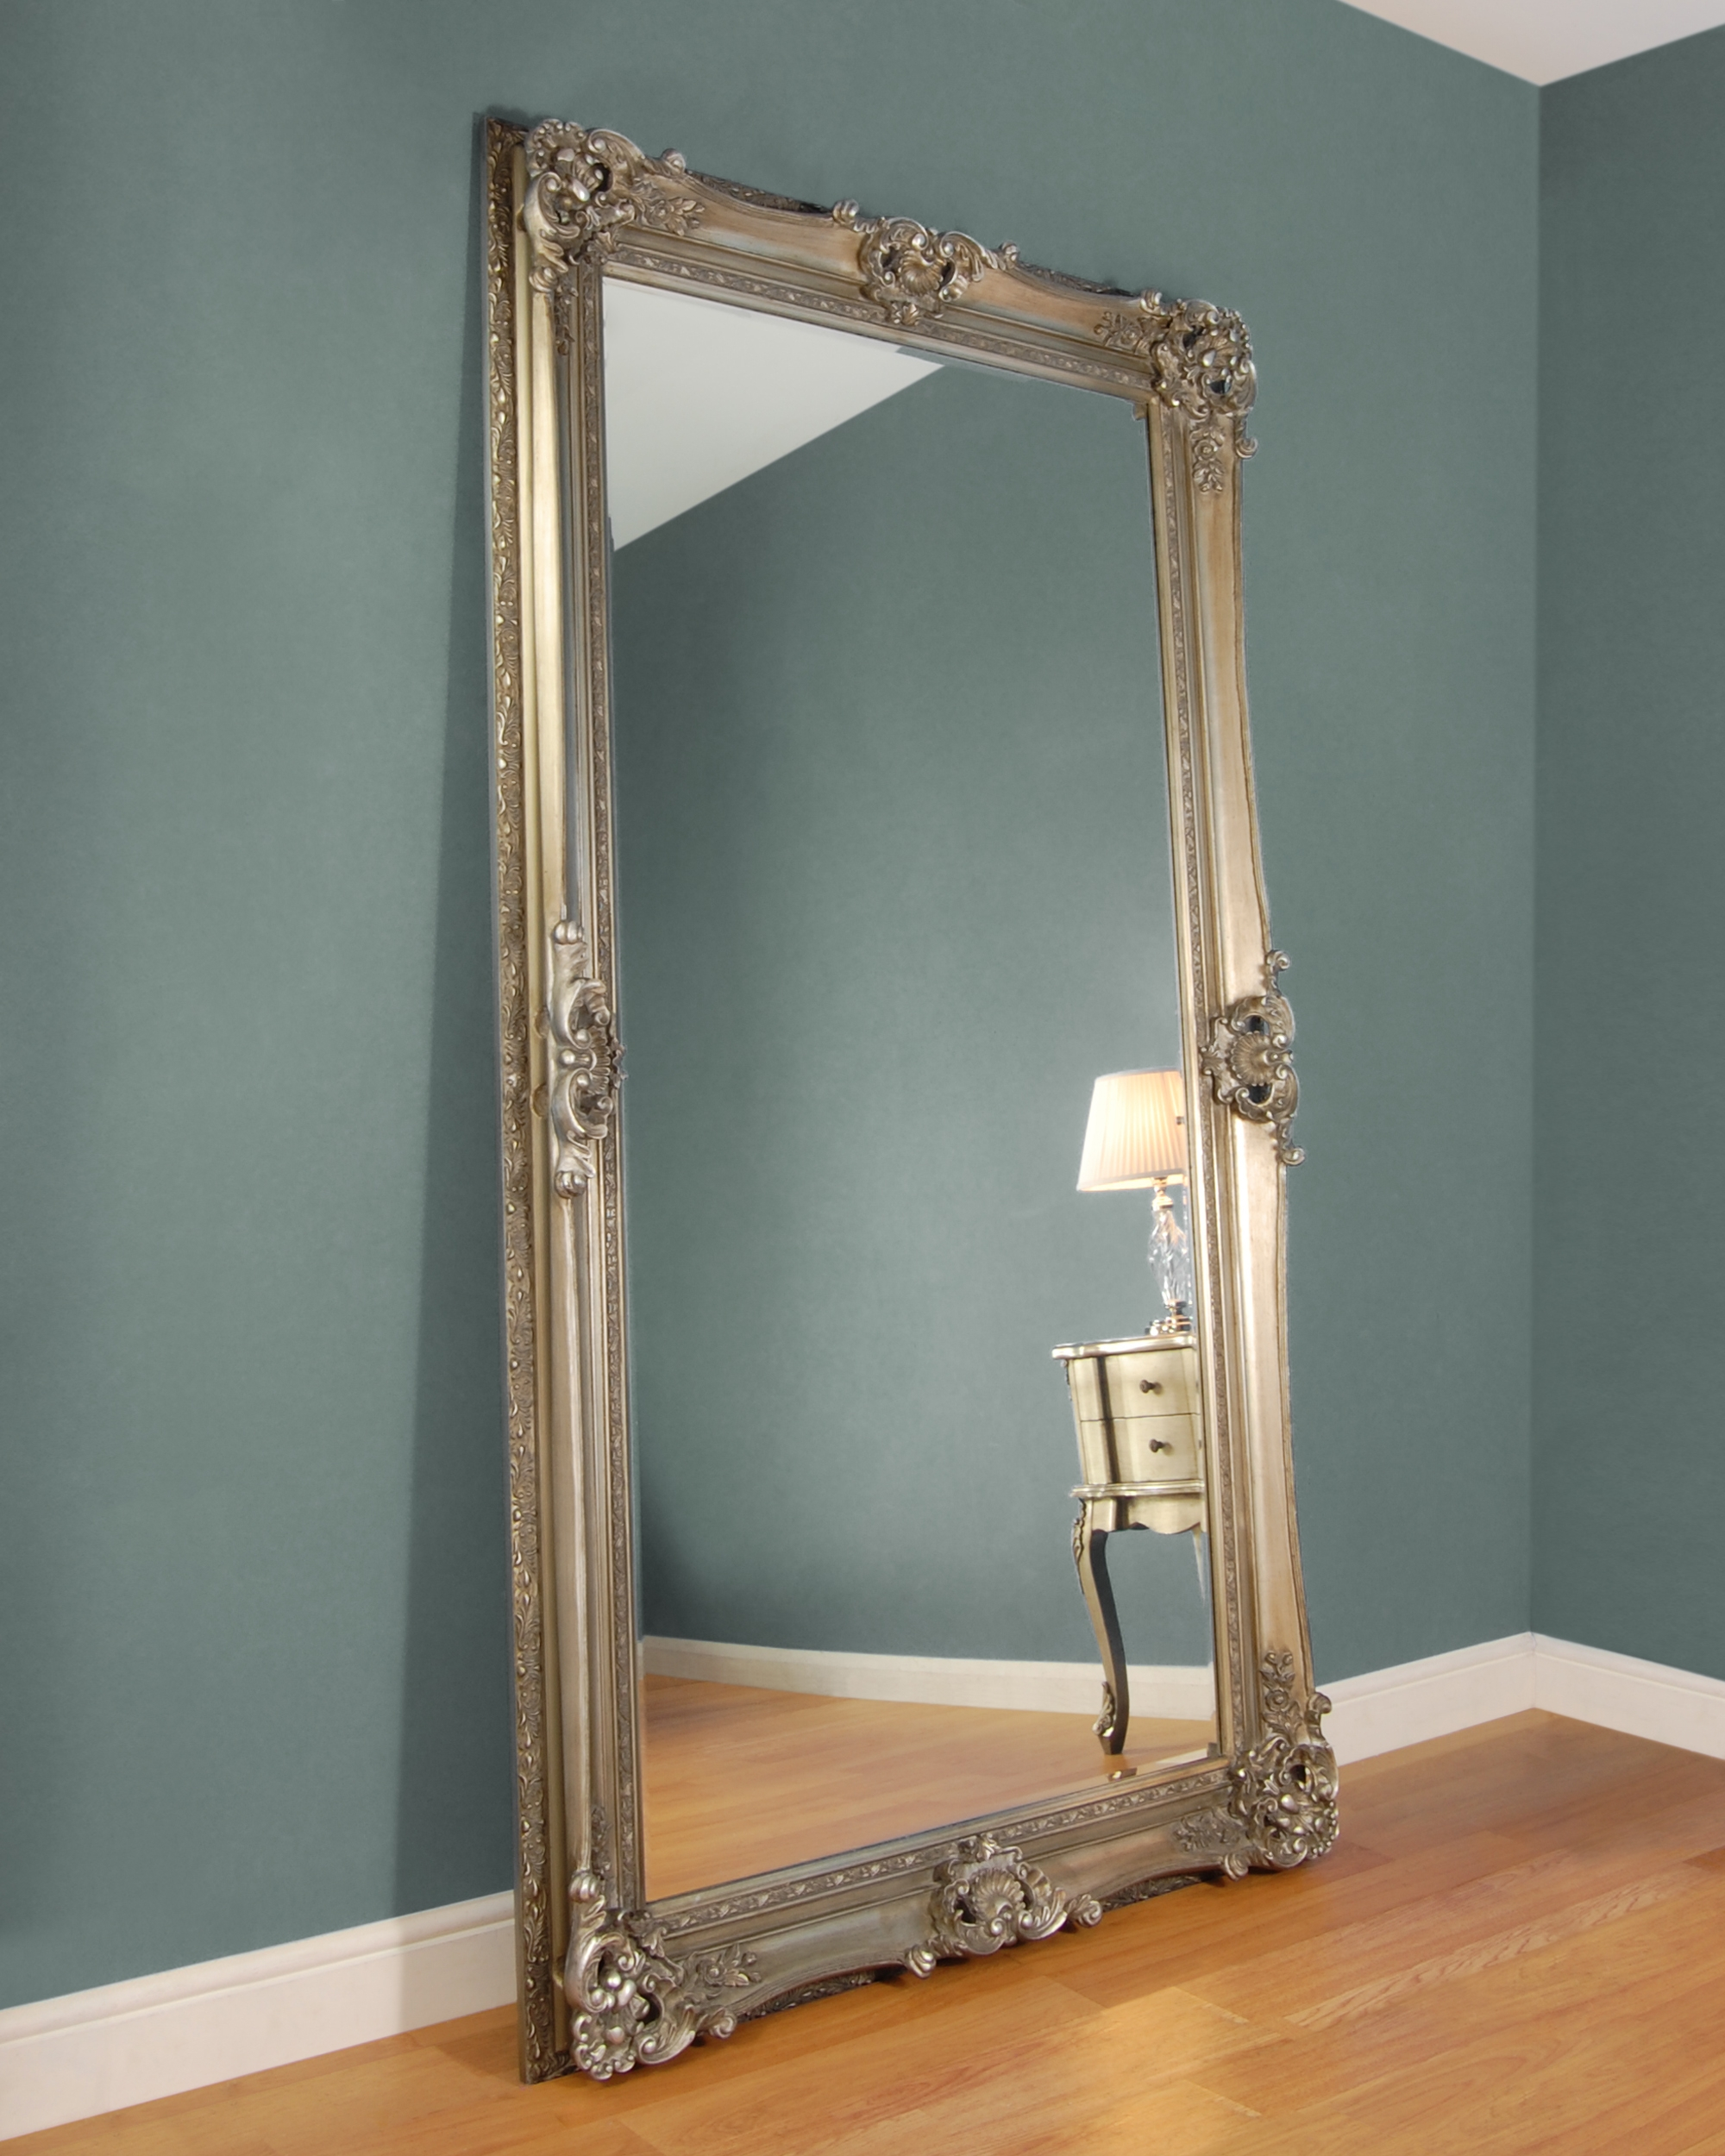 Floor Mirrors Floor Mirror Range The C M Company Regarding Rococo Floor Mirror (Image 7 of 15)